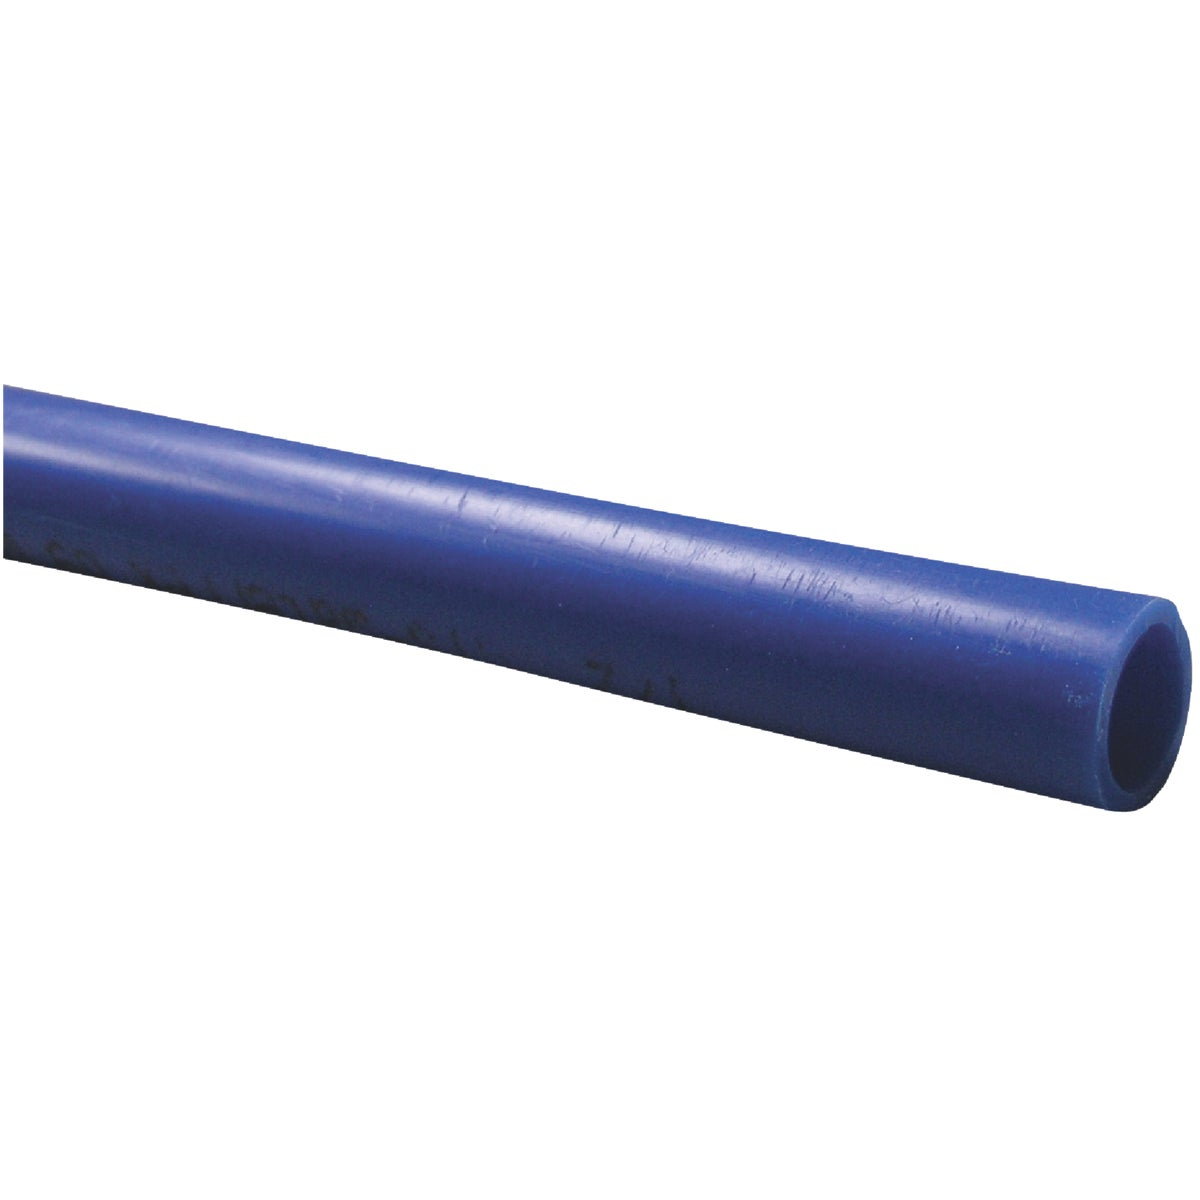 "1/2""X10' BLUE PEX TUBE - P-12-10B by Watts Regulator Co"